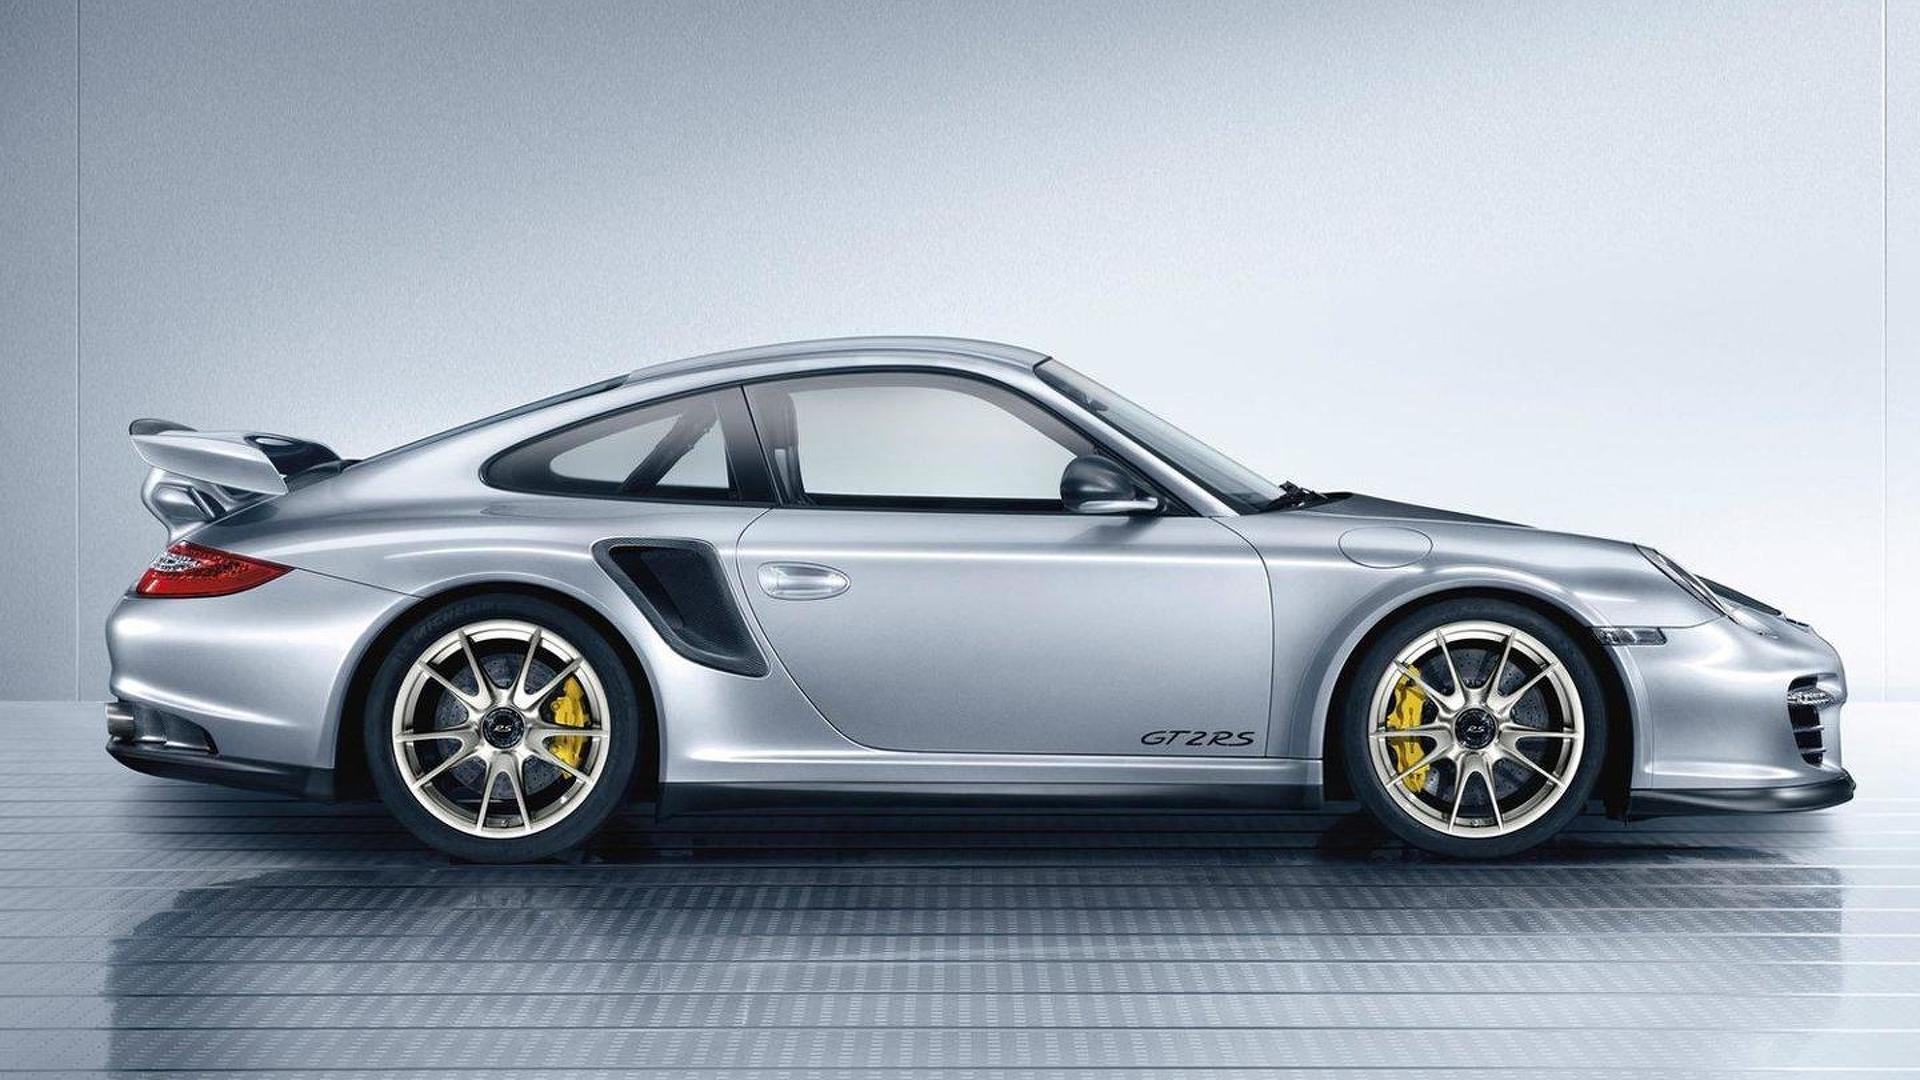 2010-201367-2011-porsche-911-gt2-rs-first-official-photos-12-05-20101 Extraordinary Porsche 911 Gt2 Rs Used Cars Trend